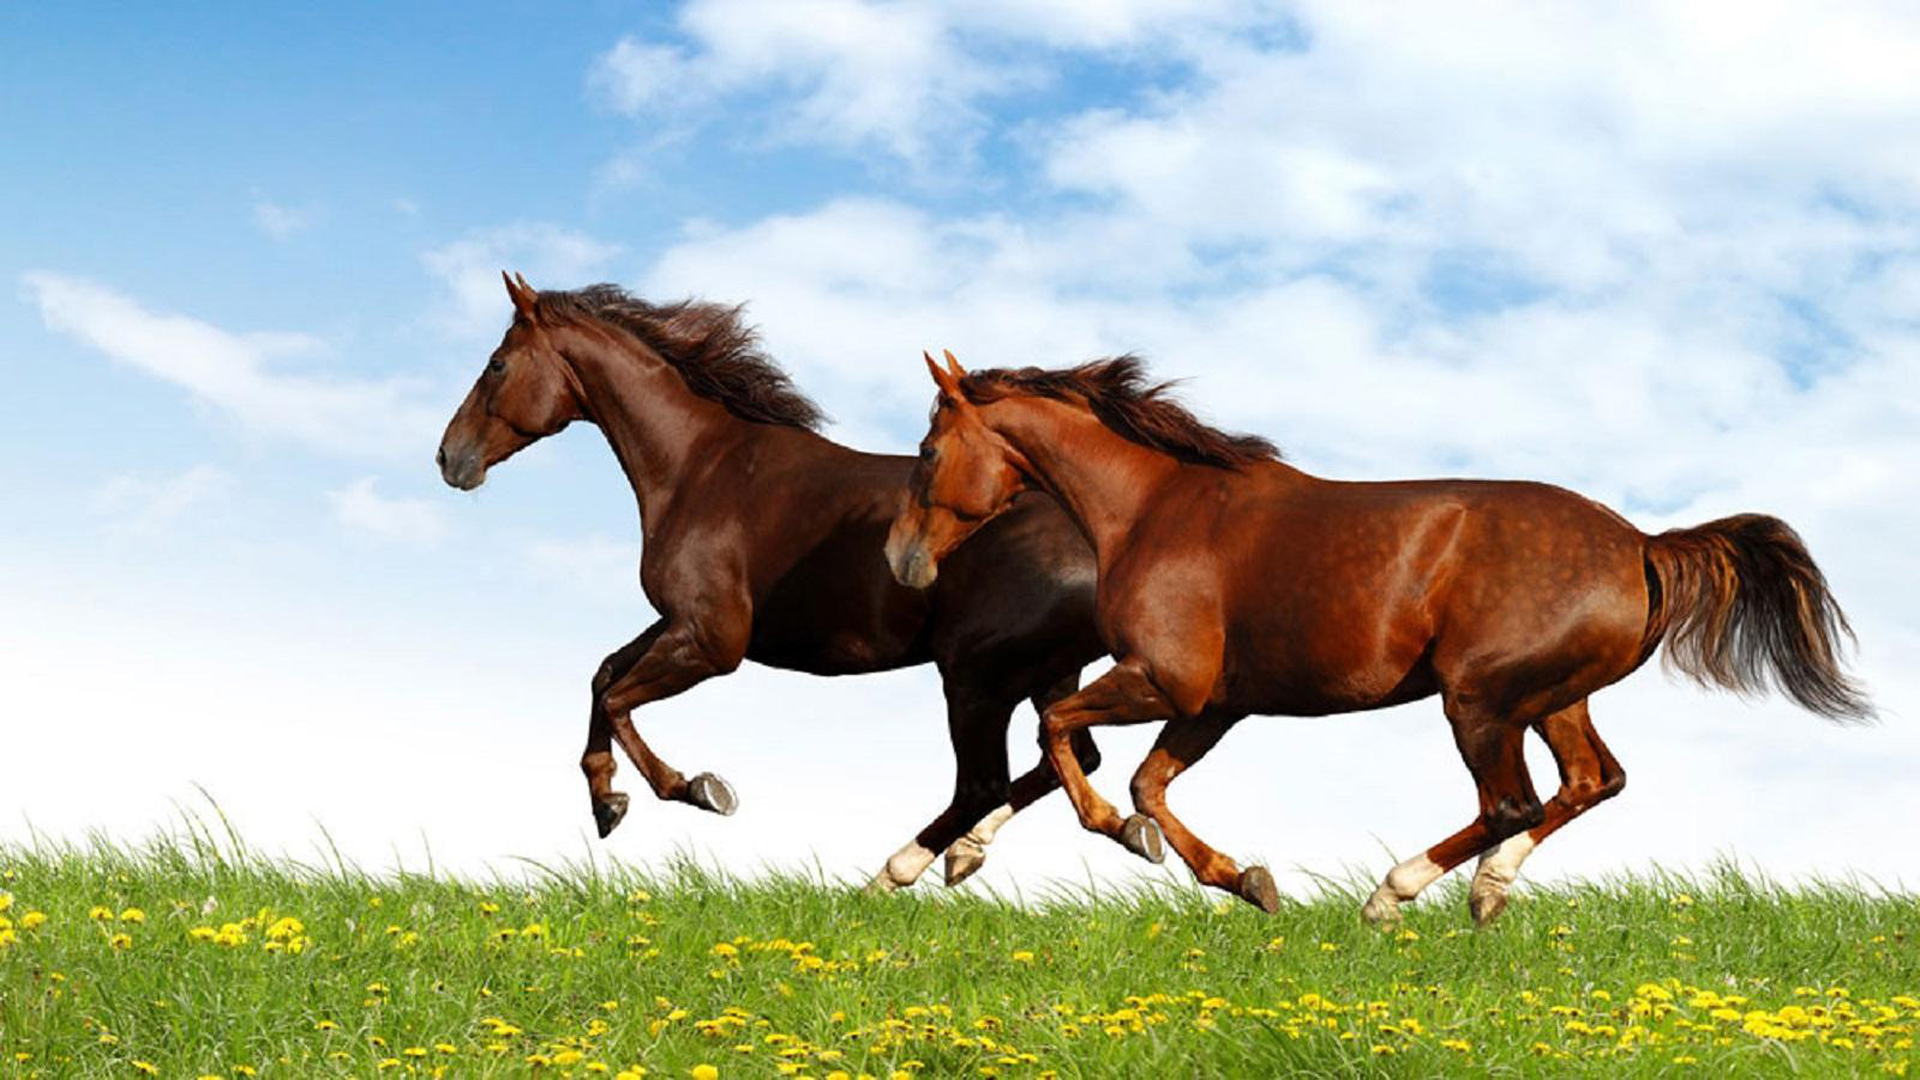 Horses Galloping 1920x1080 Wallpaper Teahub Io